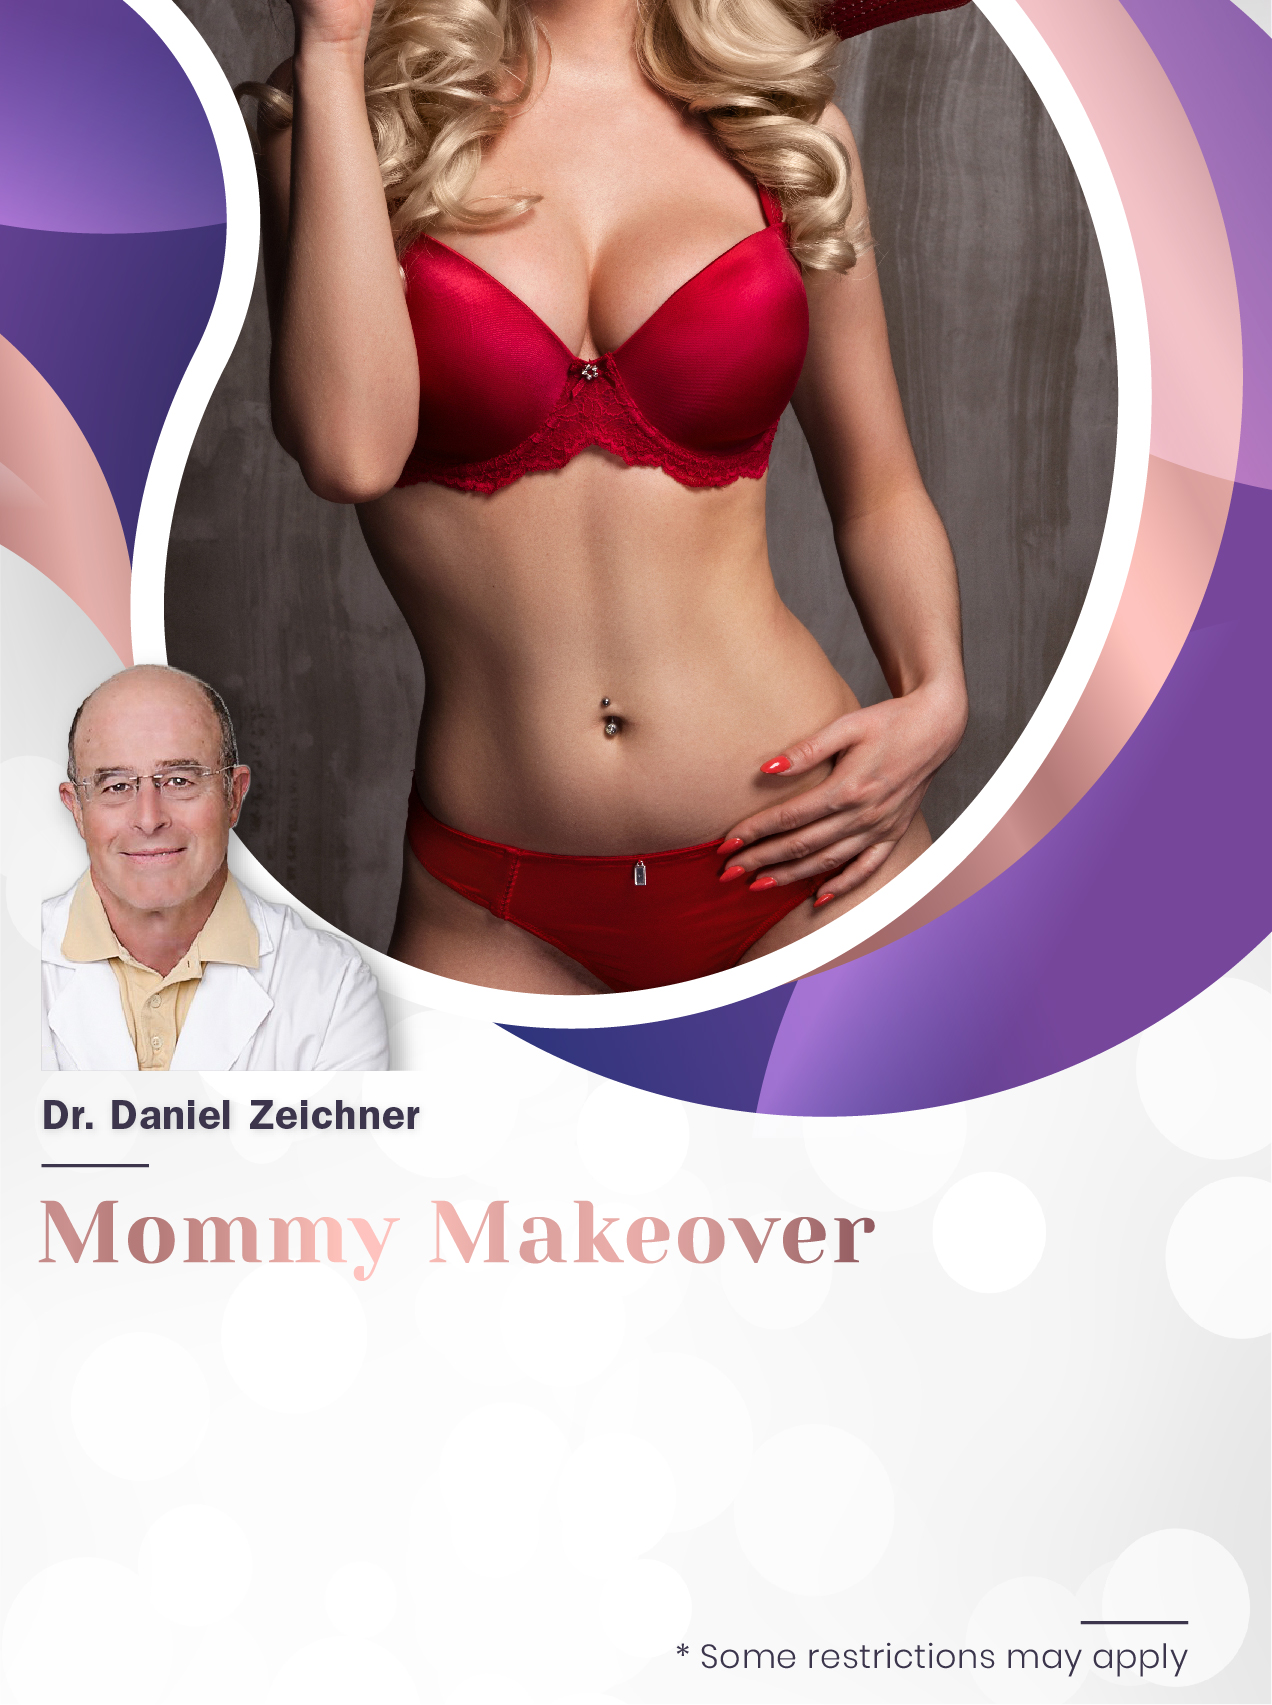 Mommy Makeover with Dr Zeichner for $7,500 Special Image